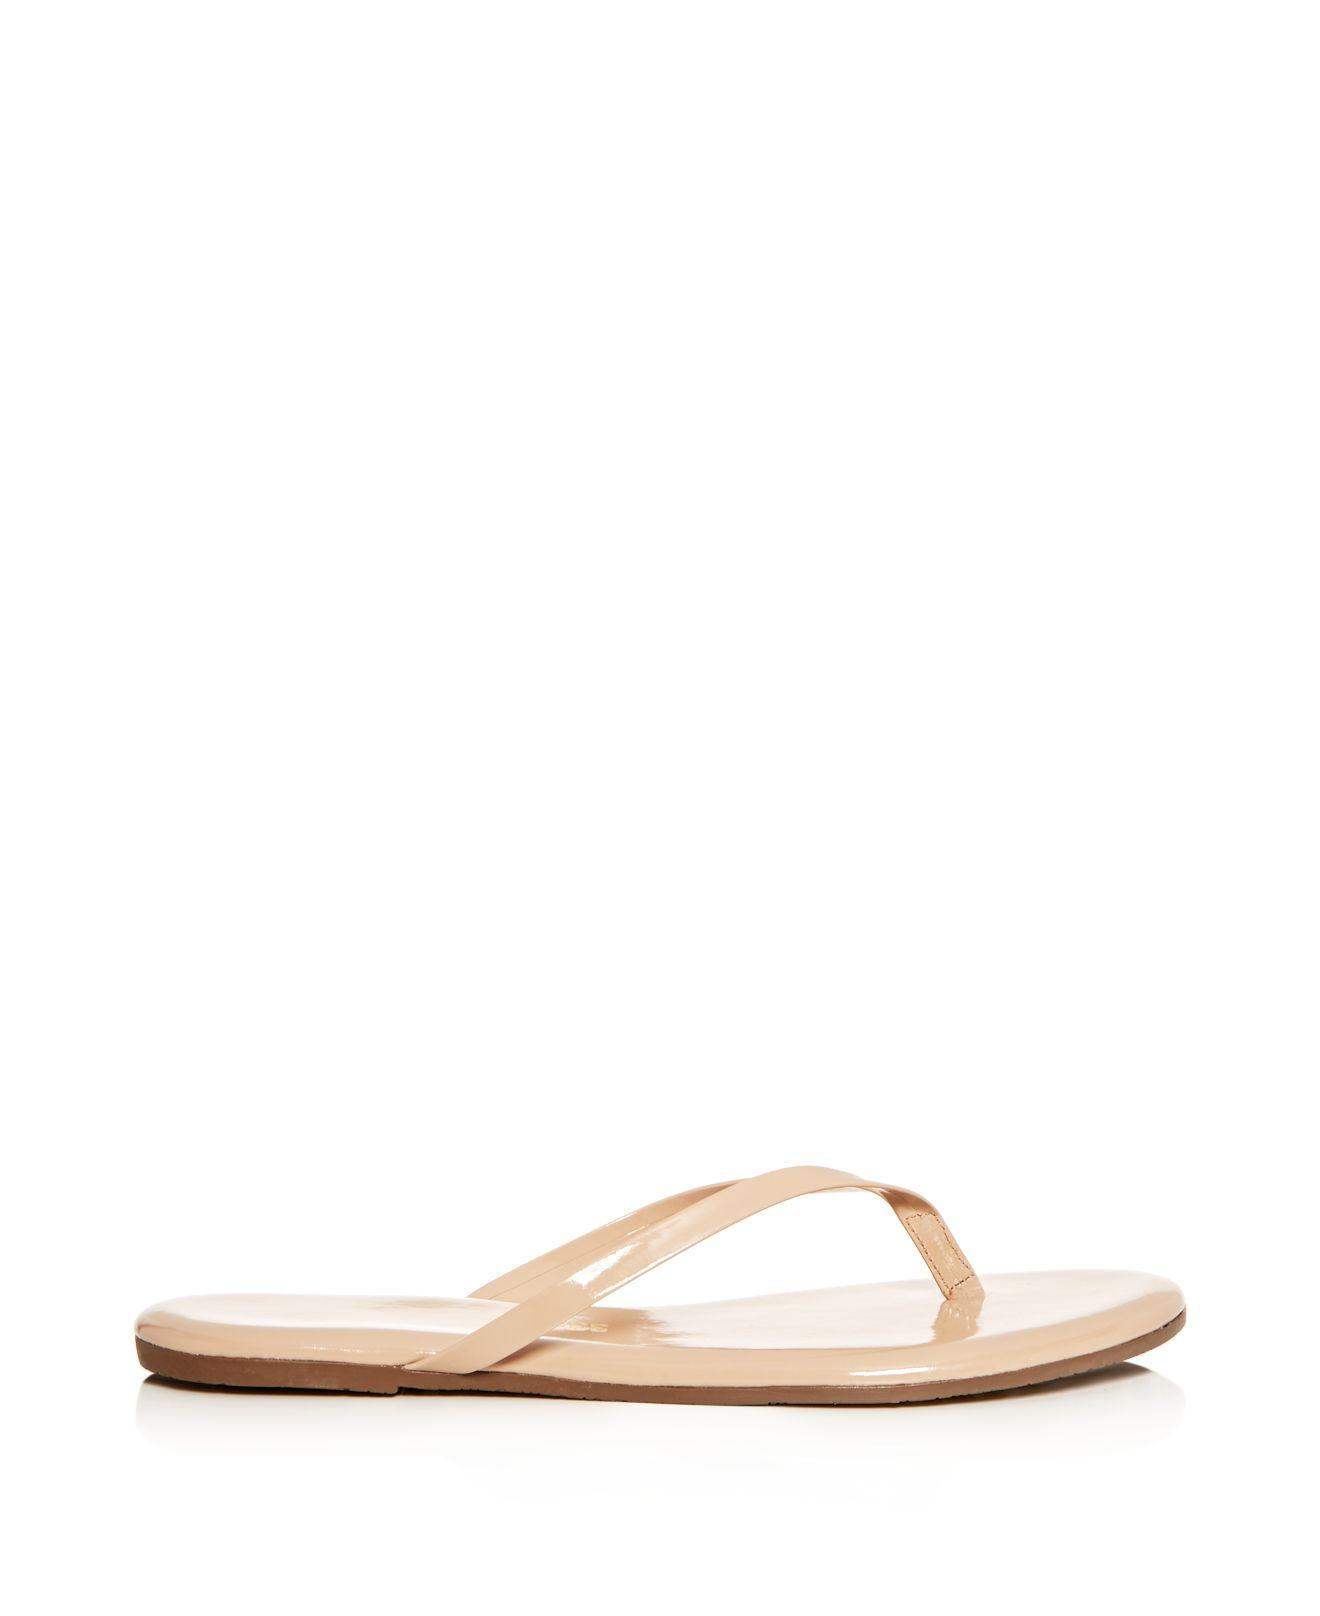 Tkees Women's Foundations Gloss Patent Leather Flip-Flops dialn1zz